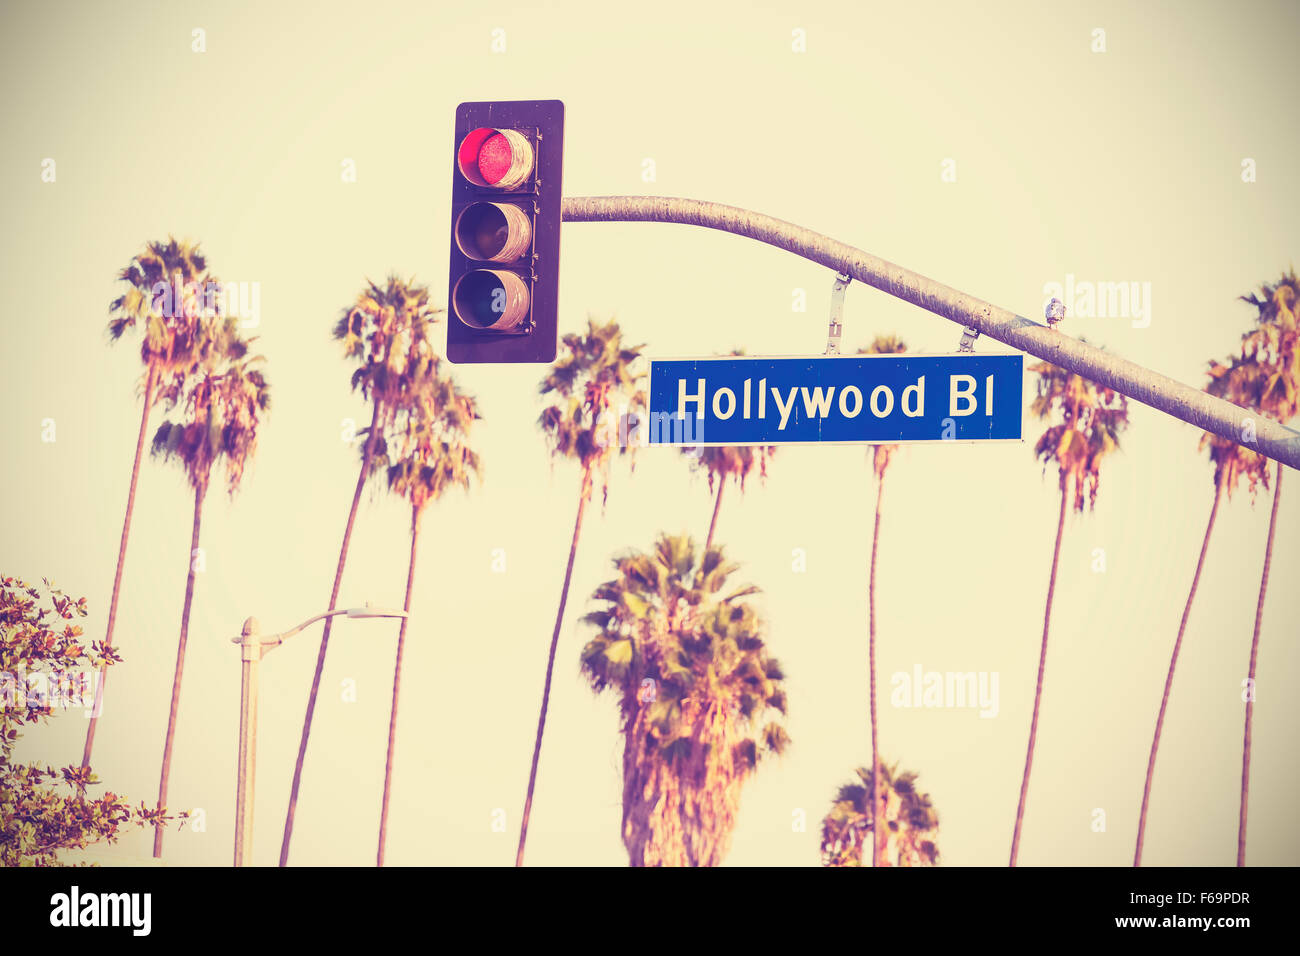 Vintage retro toned Hollywood boulevard sign and traffic lights with palm trees in the background, Los Angeles, - Stock Image